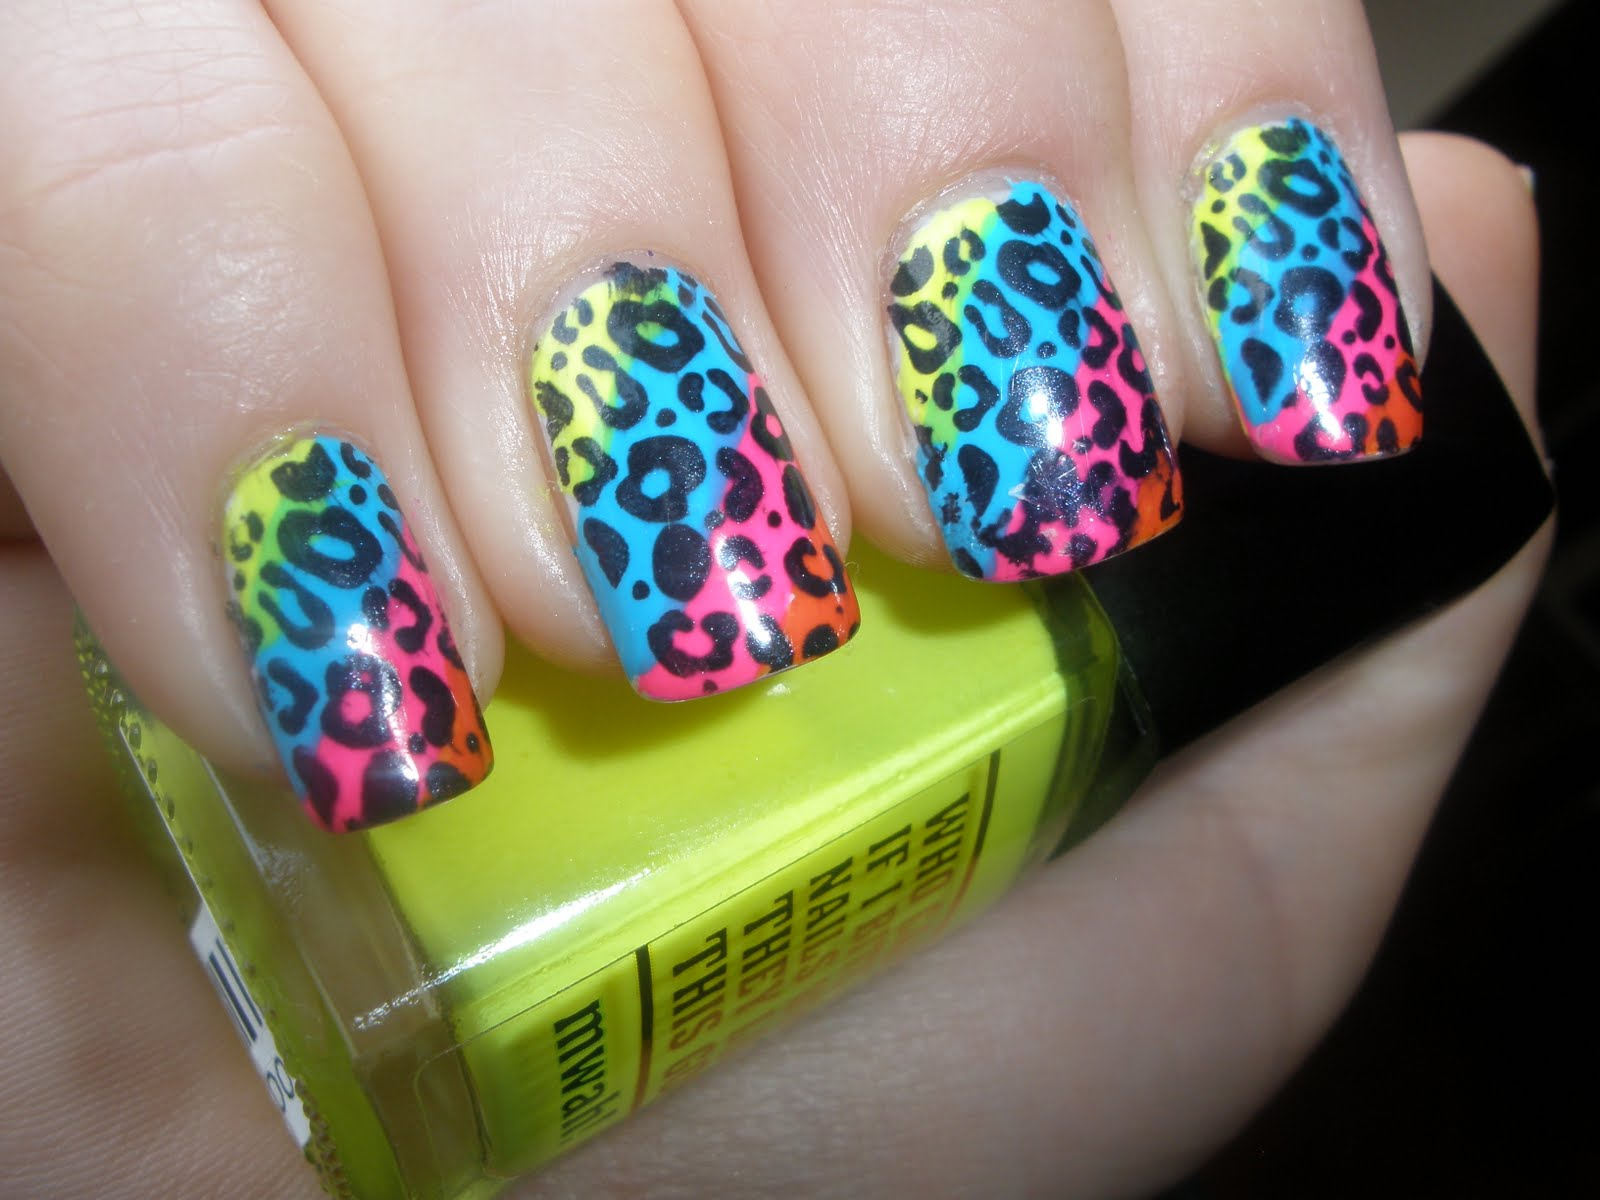 Cheetah Nail Designs 2015 - Reasabaidhean